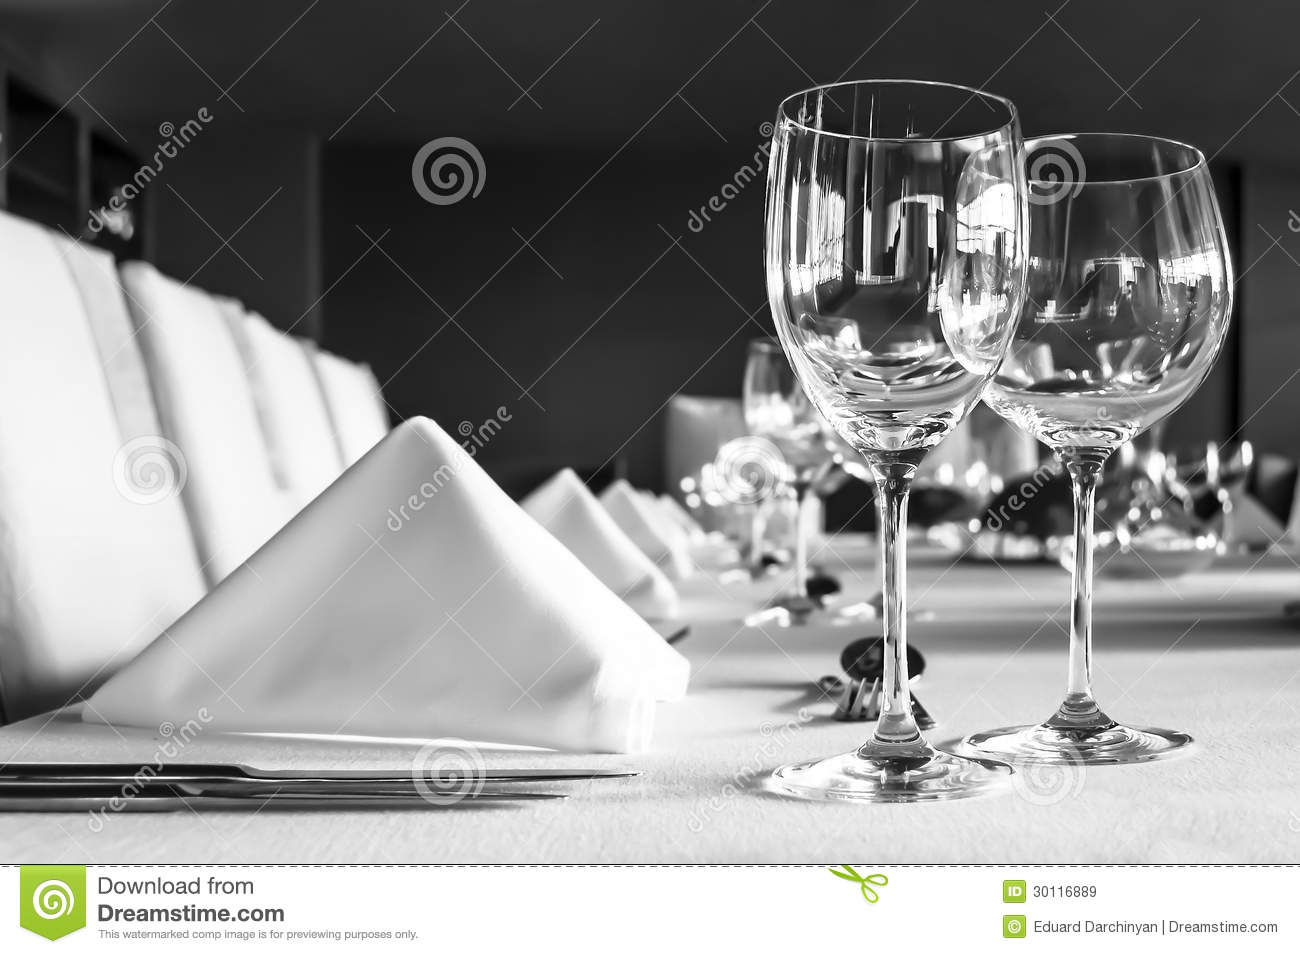 Arrangement de tableau dans le restaurant images libres de for Disposition des verres sur la table